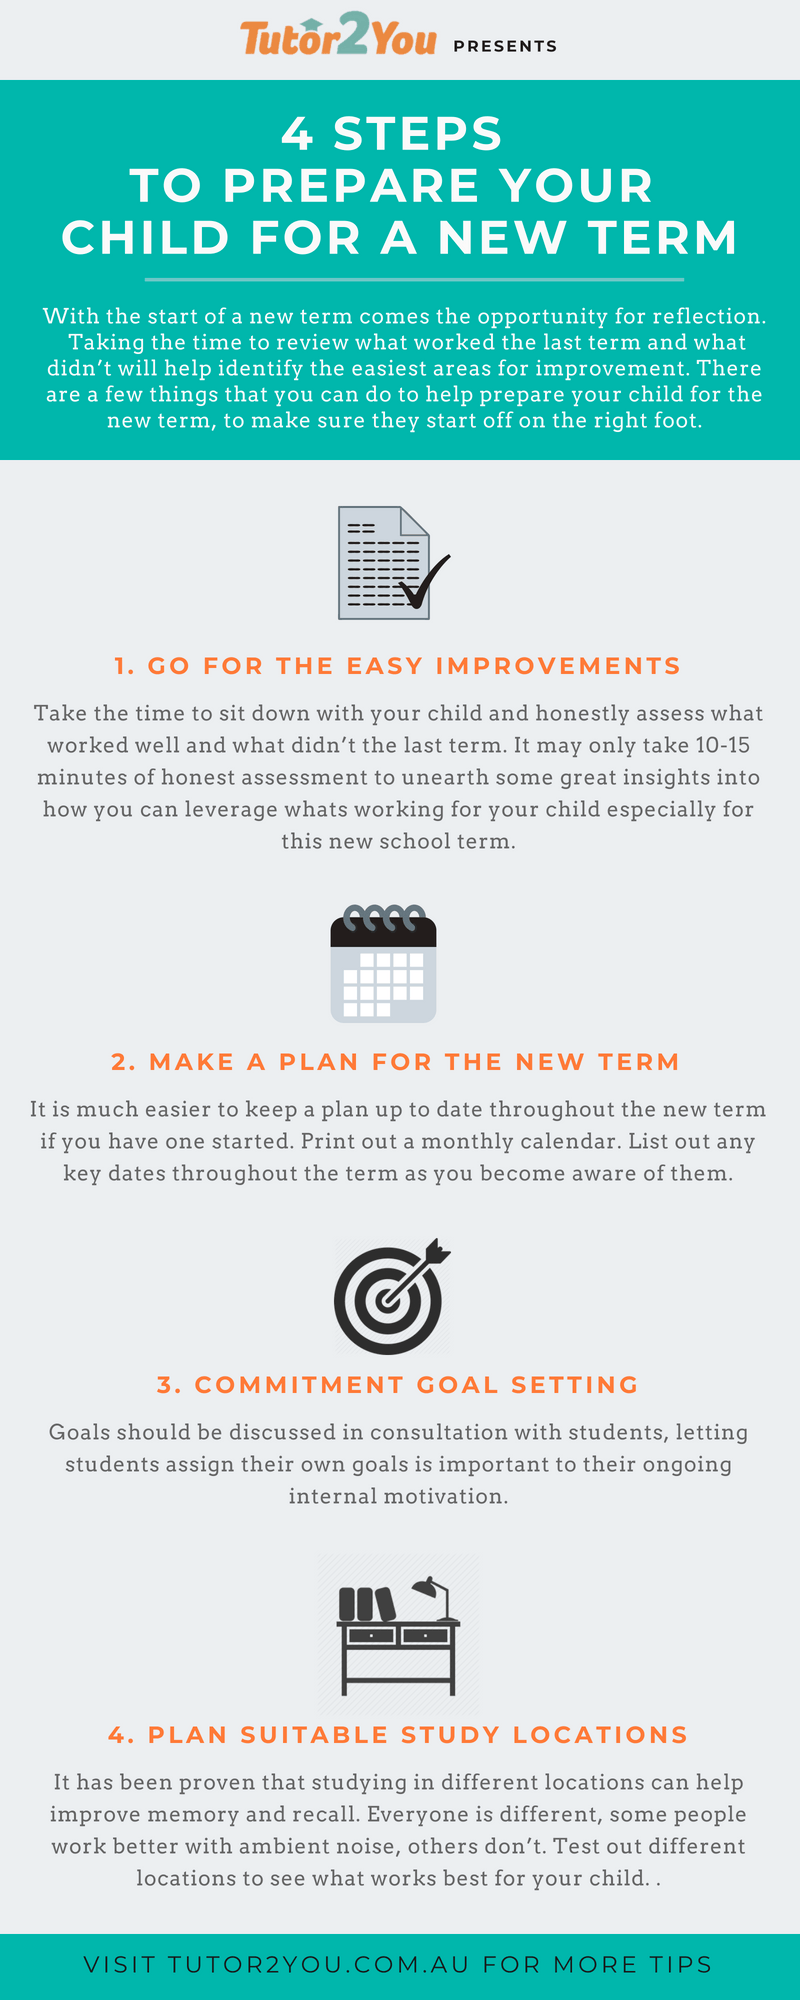 4 Steps To Prepare Your Child For A New Term Infographic